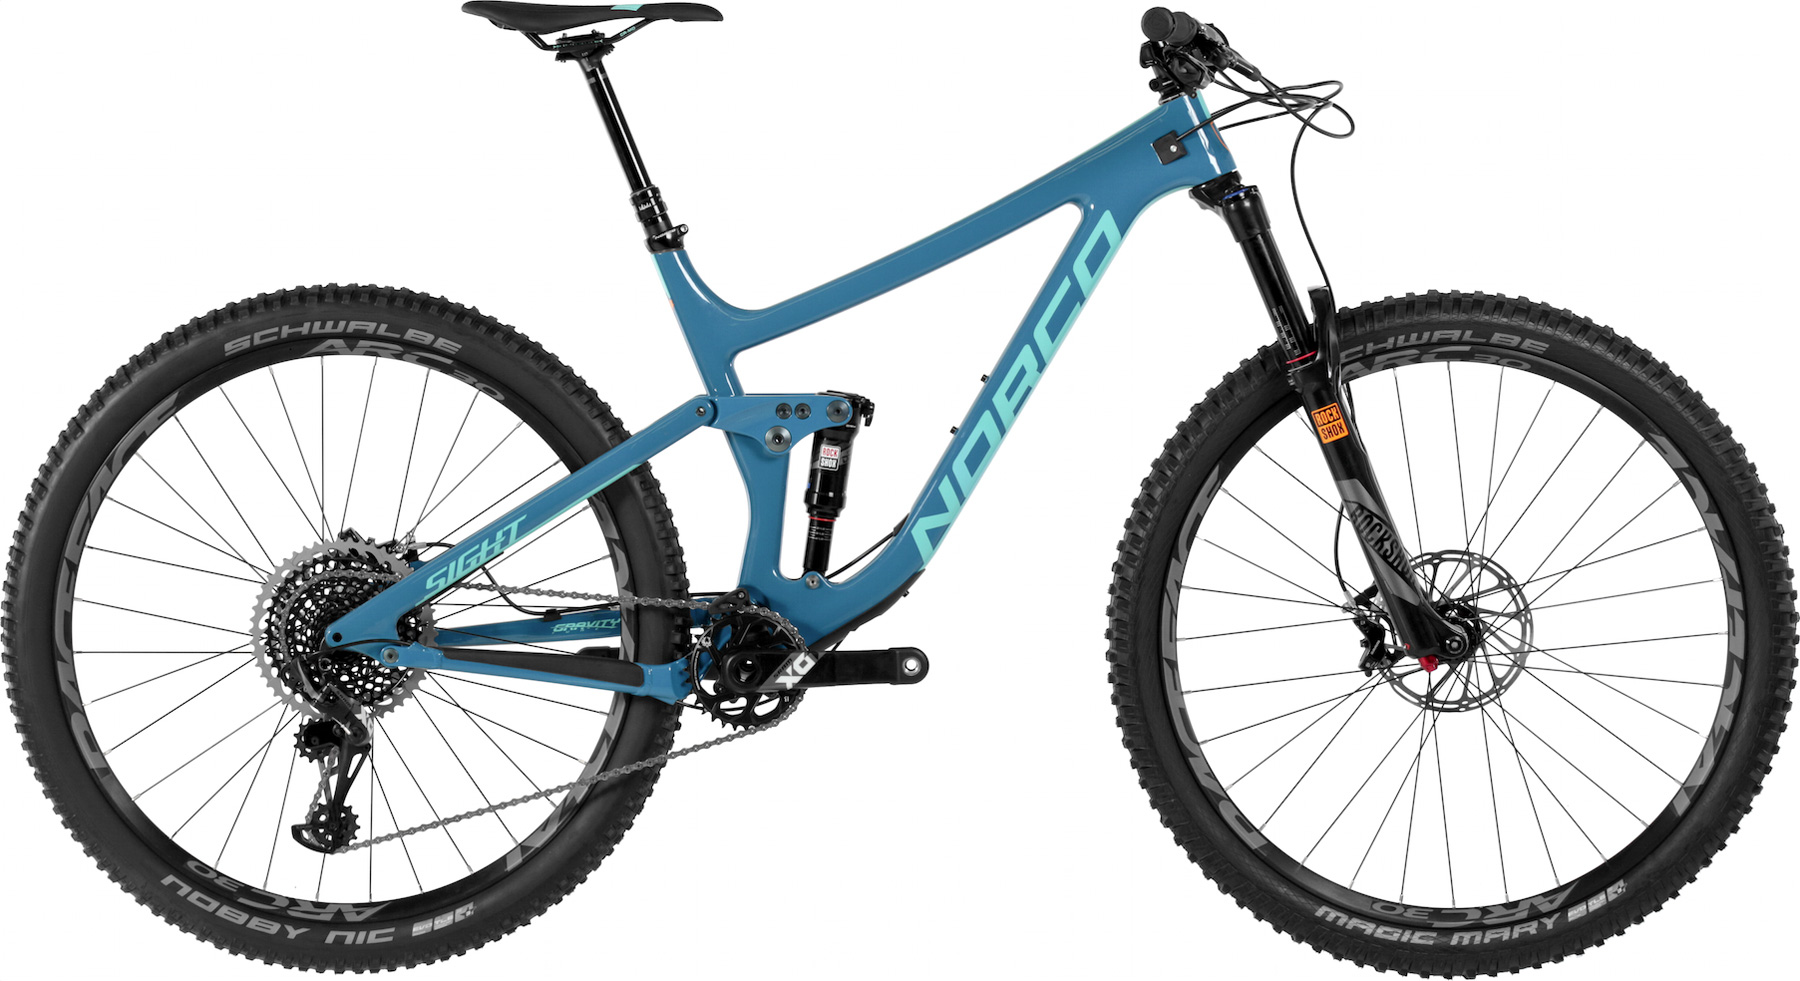 Norco Sight C9.1 CHF 6999.00